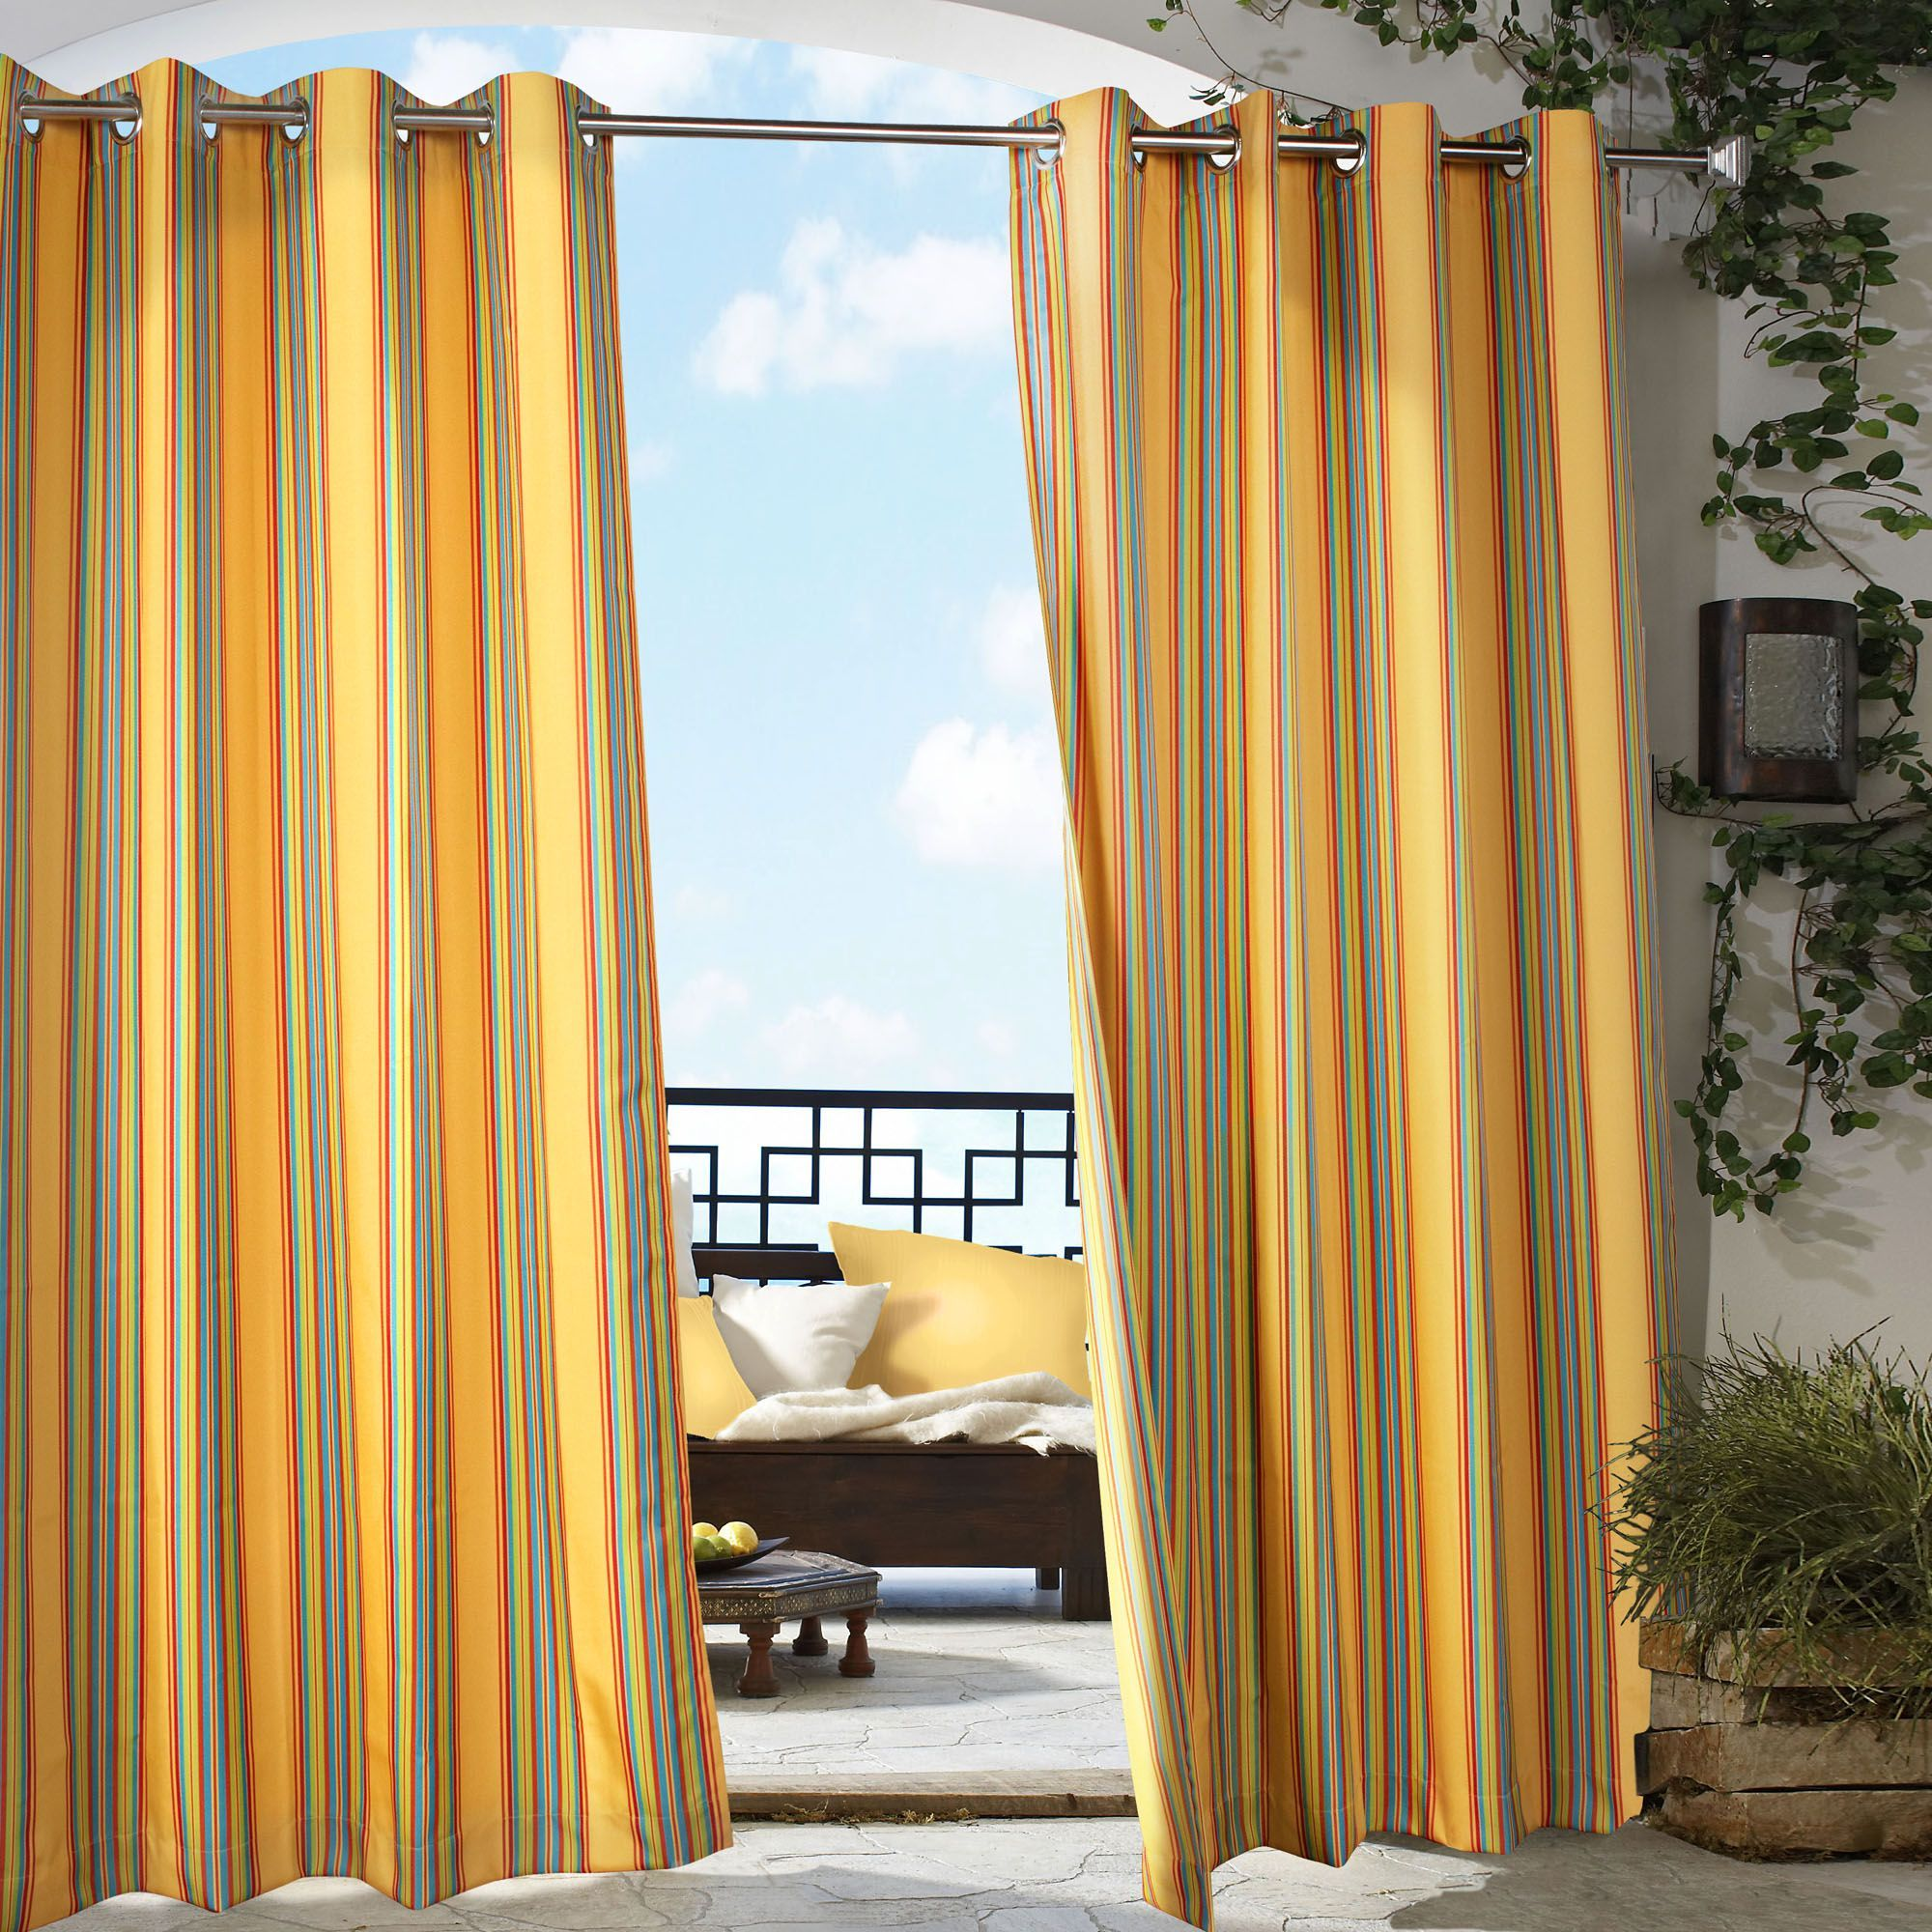 Marvelous Print Of Indoor Outdoor Curtains Displaying Beautiful Details That Can Be  The Source Of Attraction